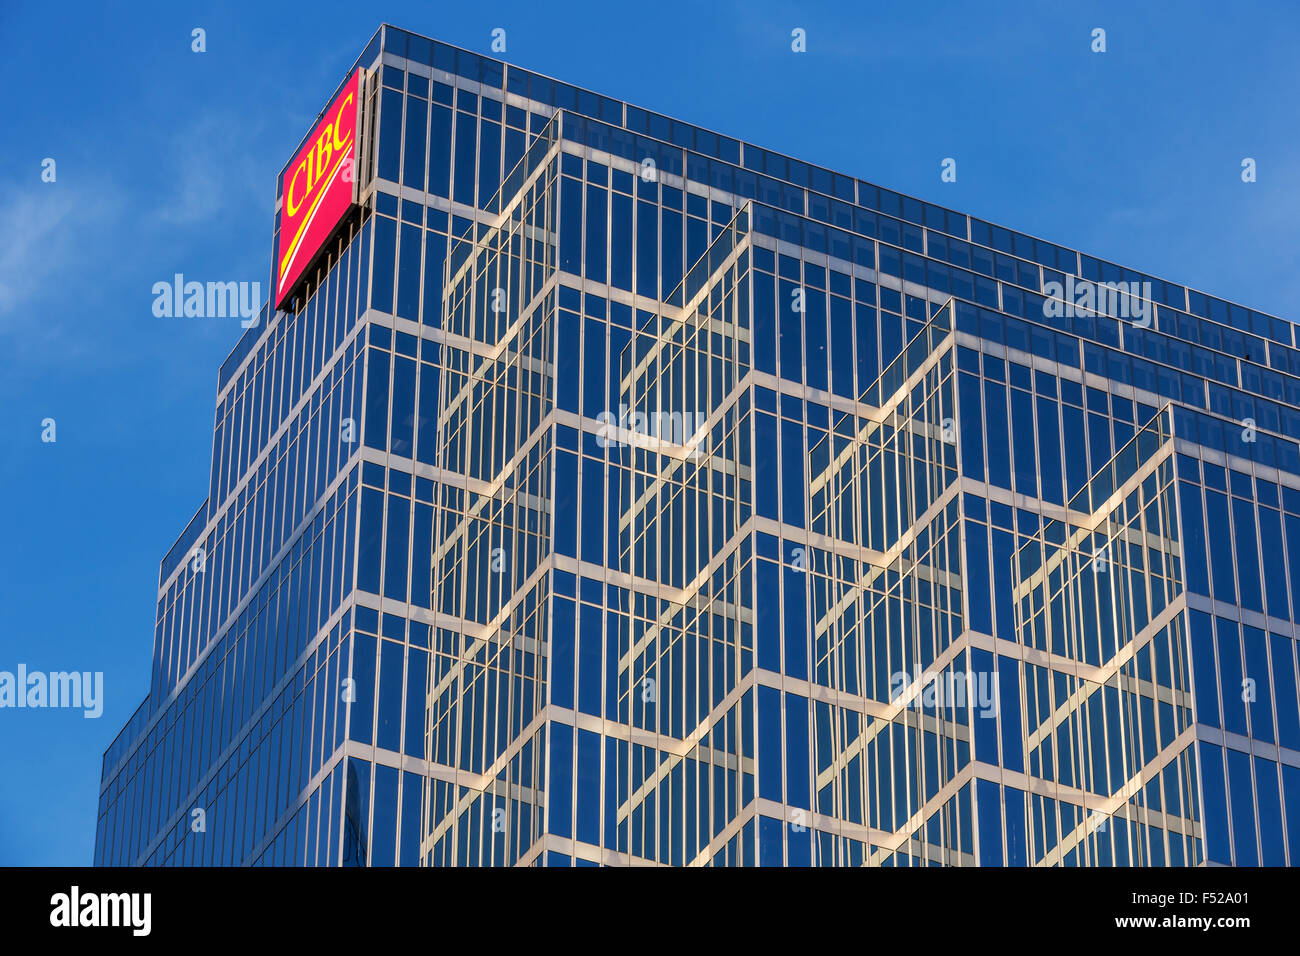 Glass facades of CIBC office towers in Vancouver, BC, Canada - Stock Image